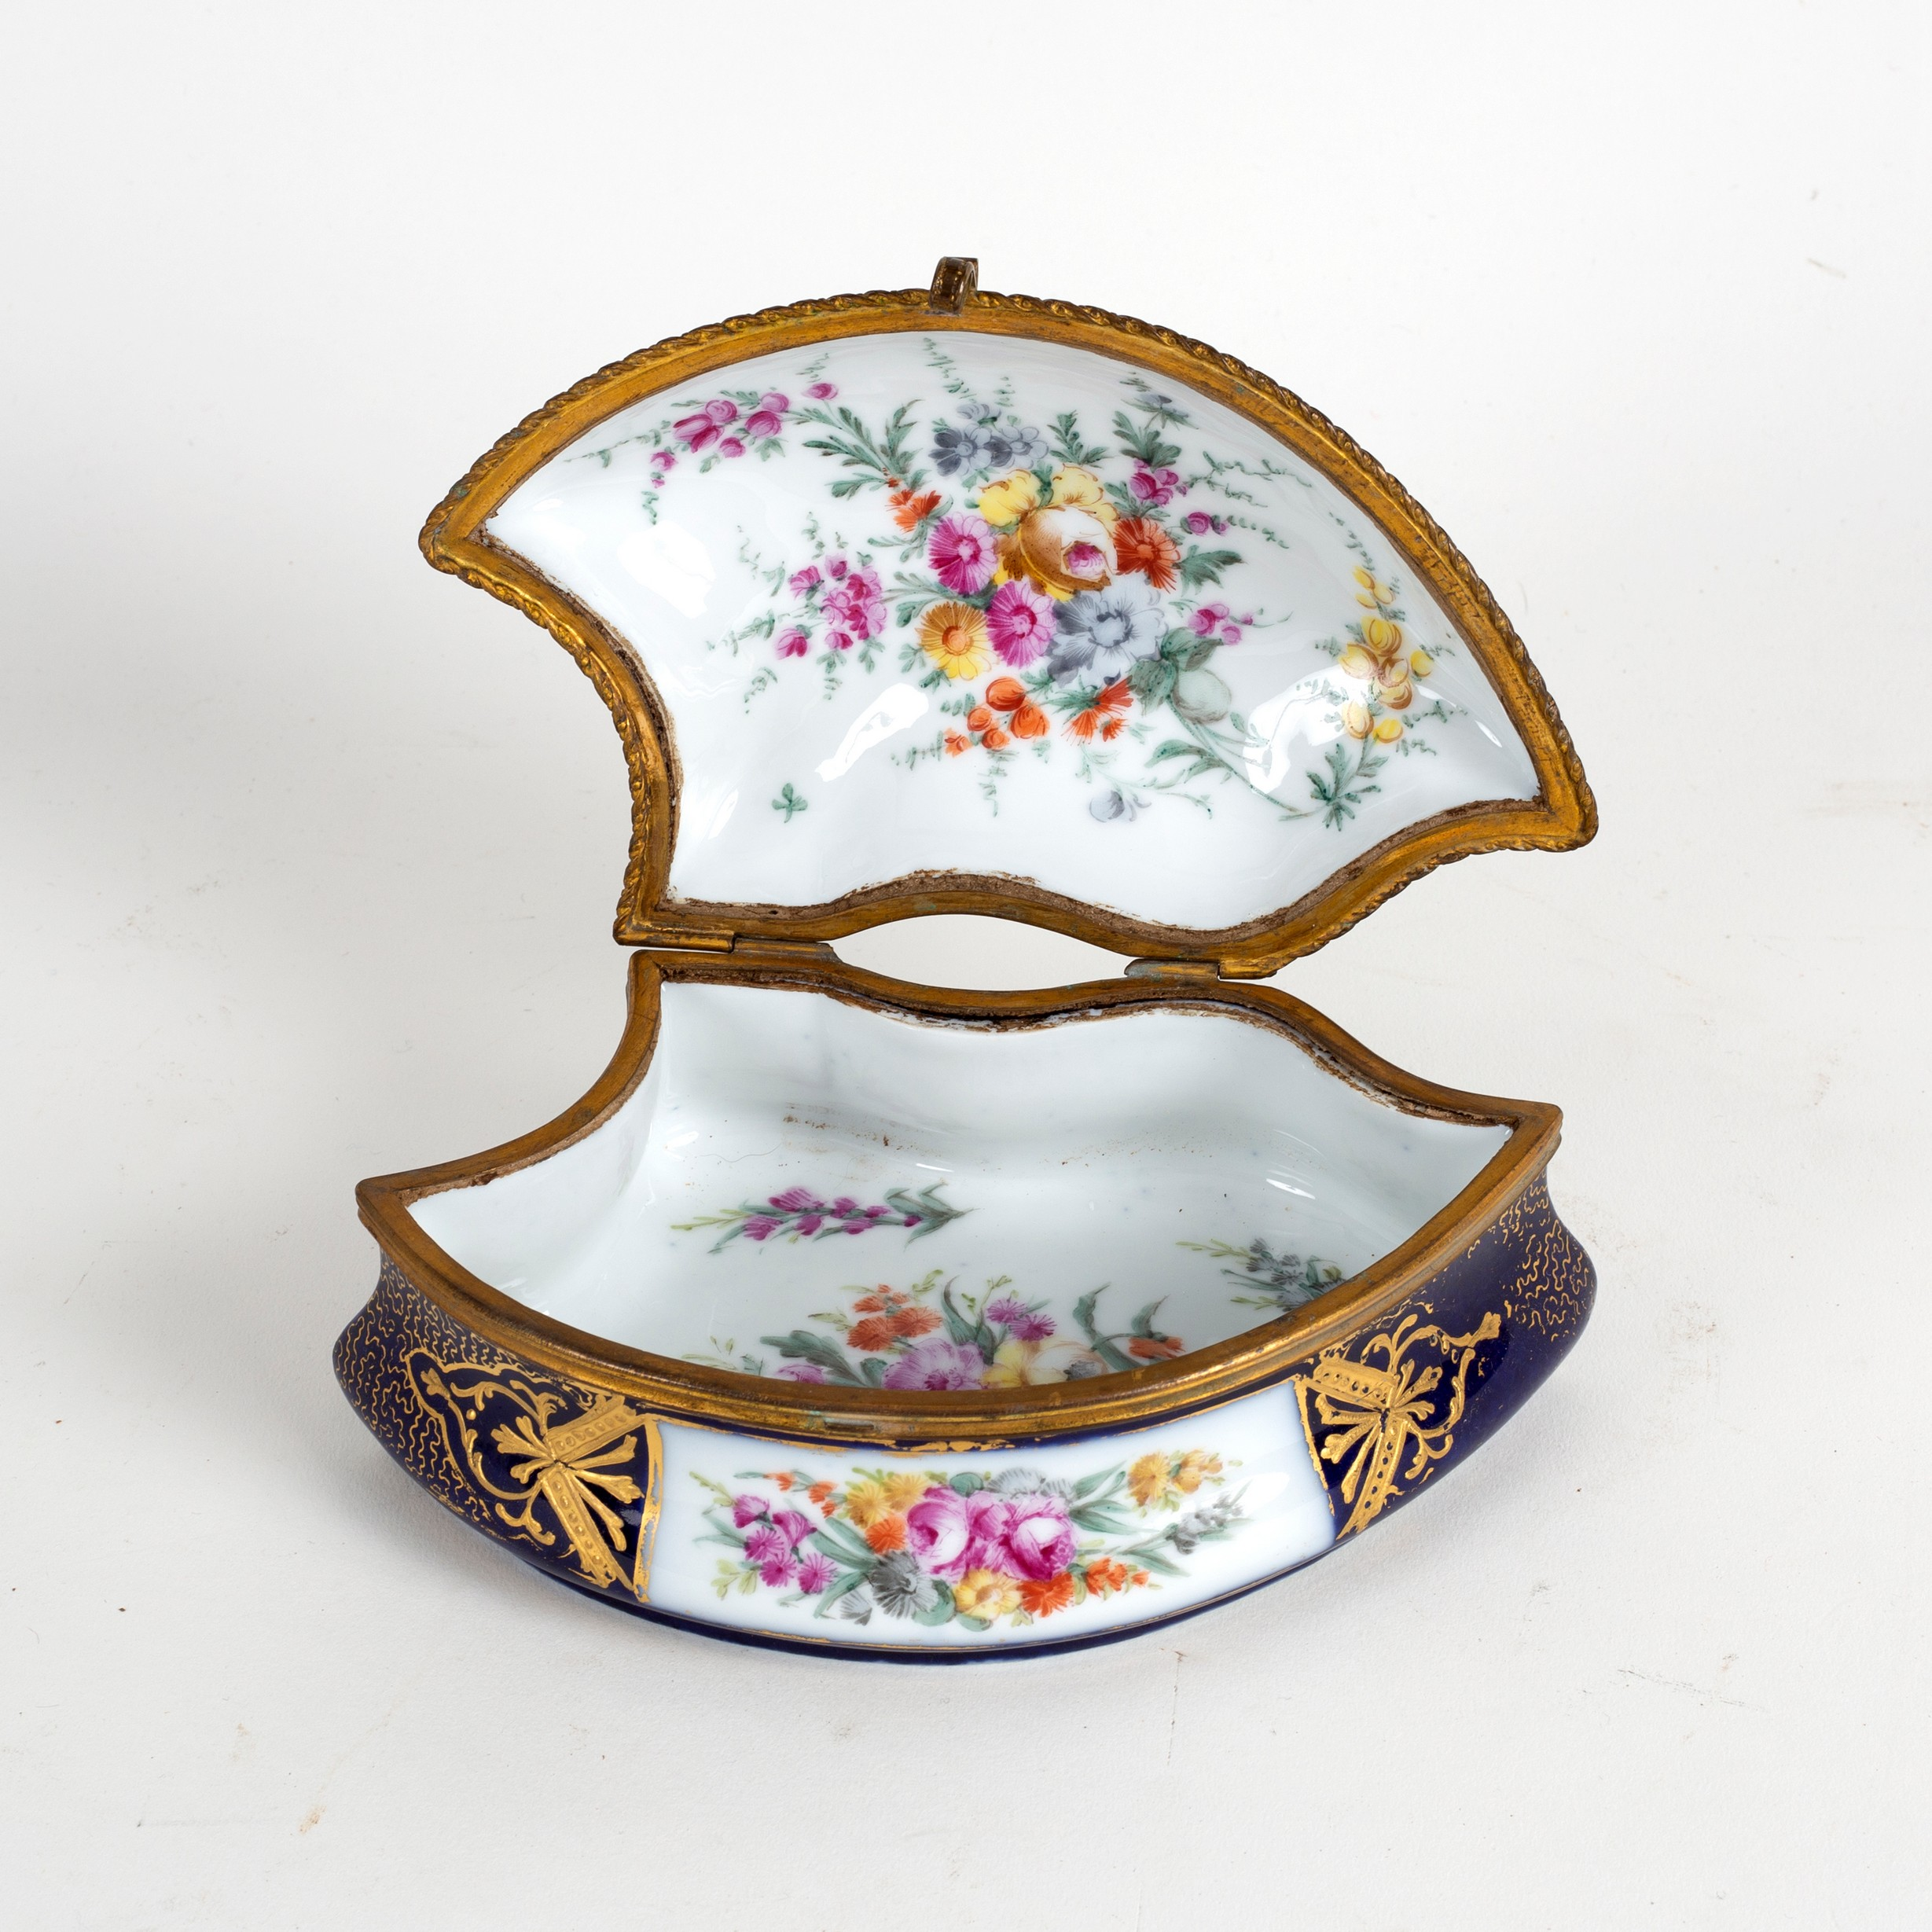 Lot 220 - A French porcelain box, the cover decorated figures, signed P Roche, 18.